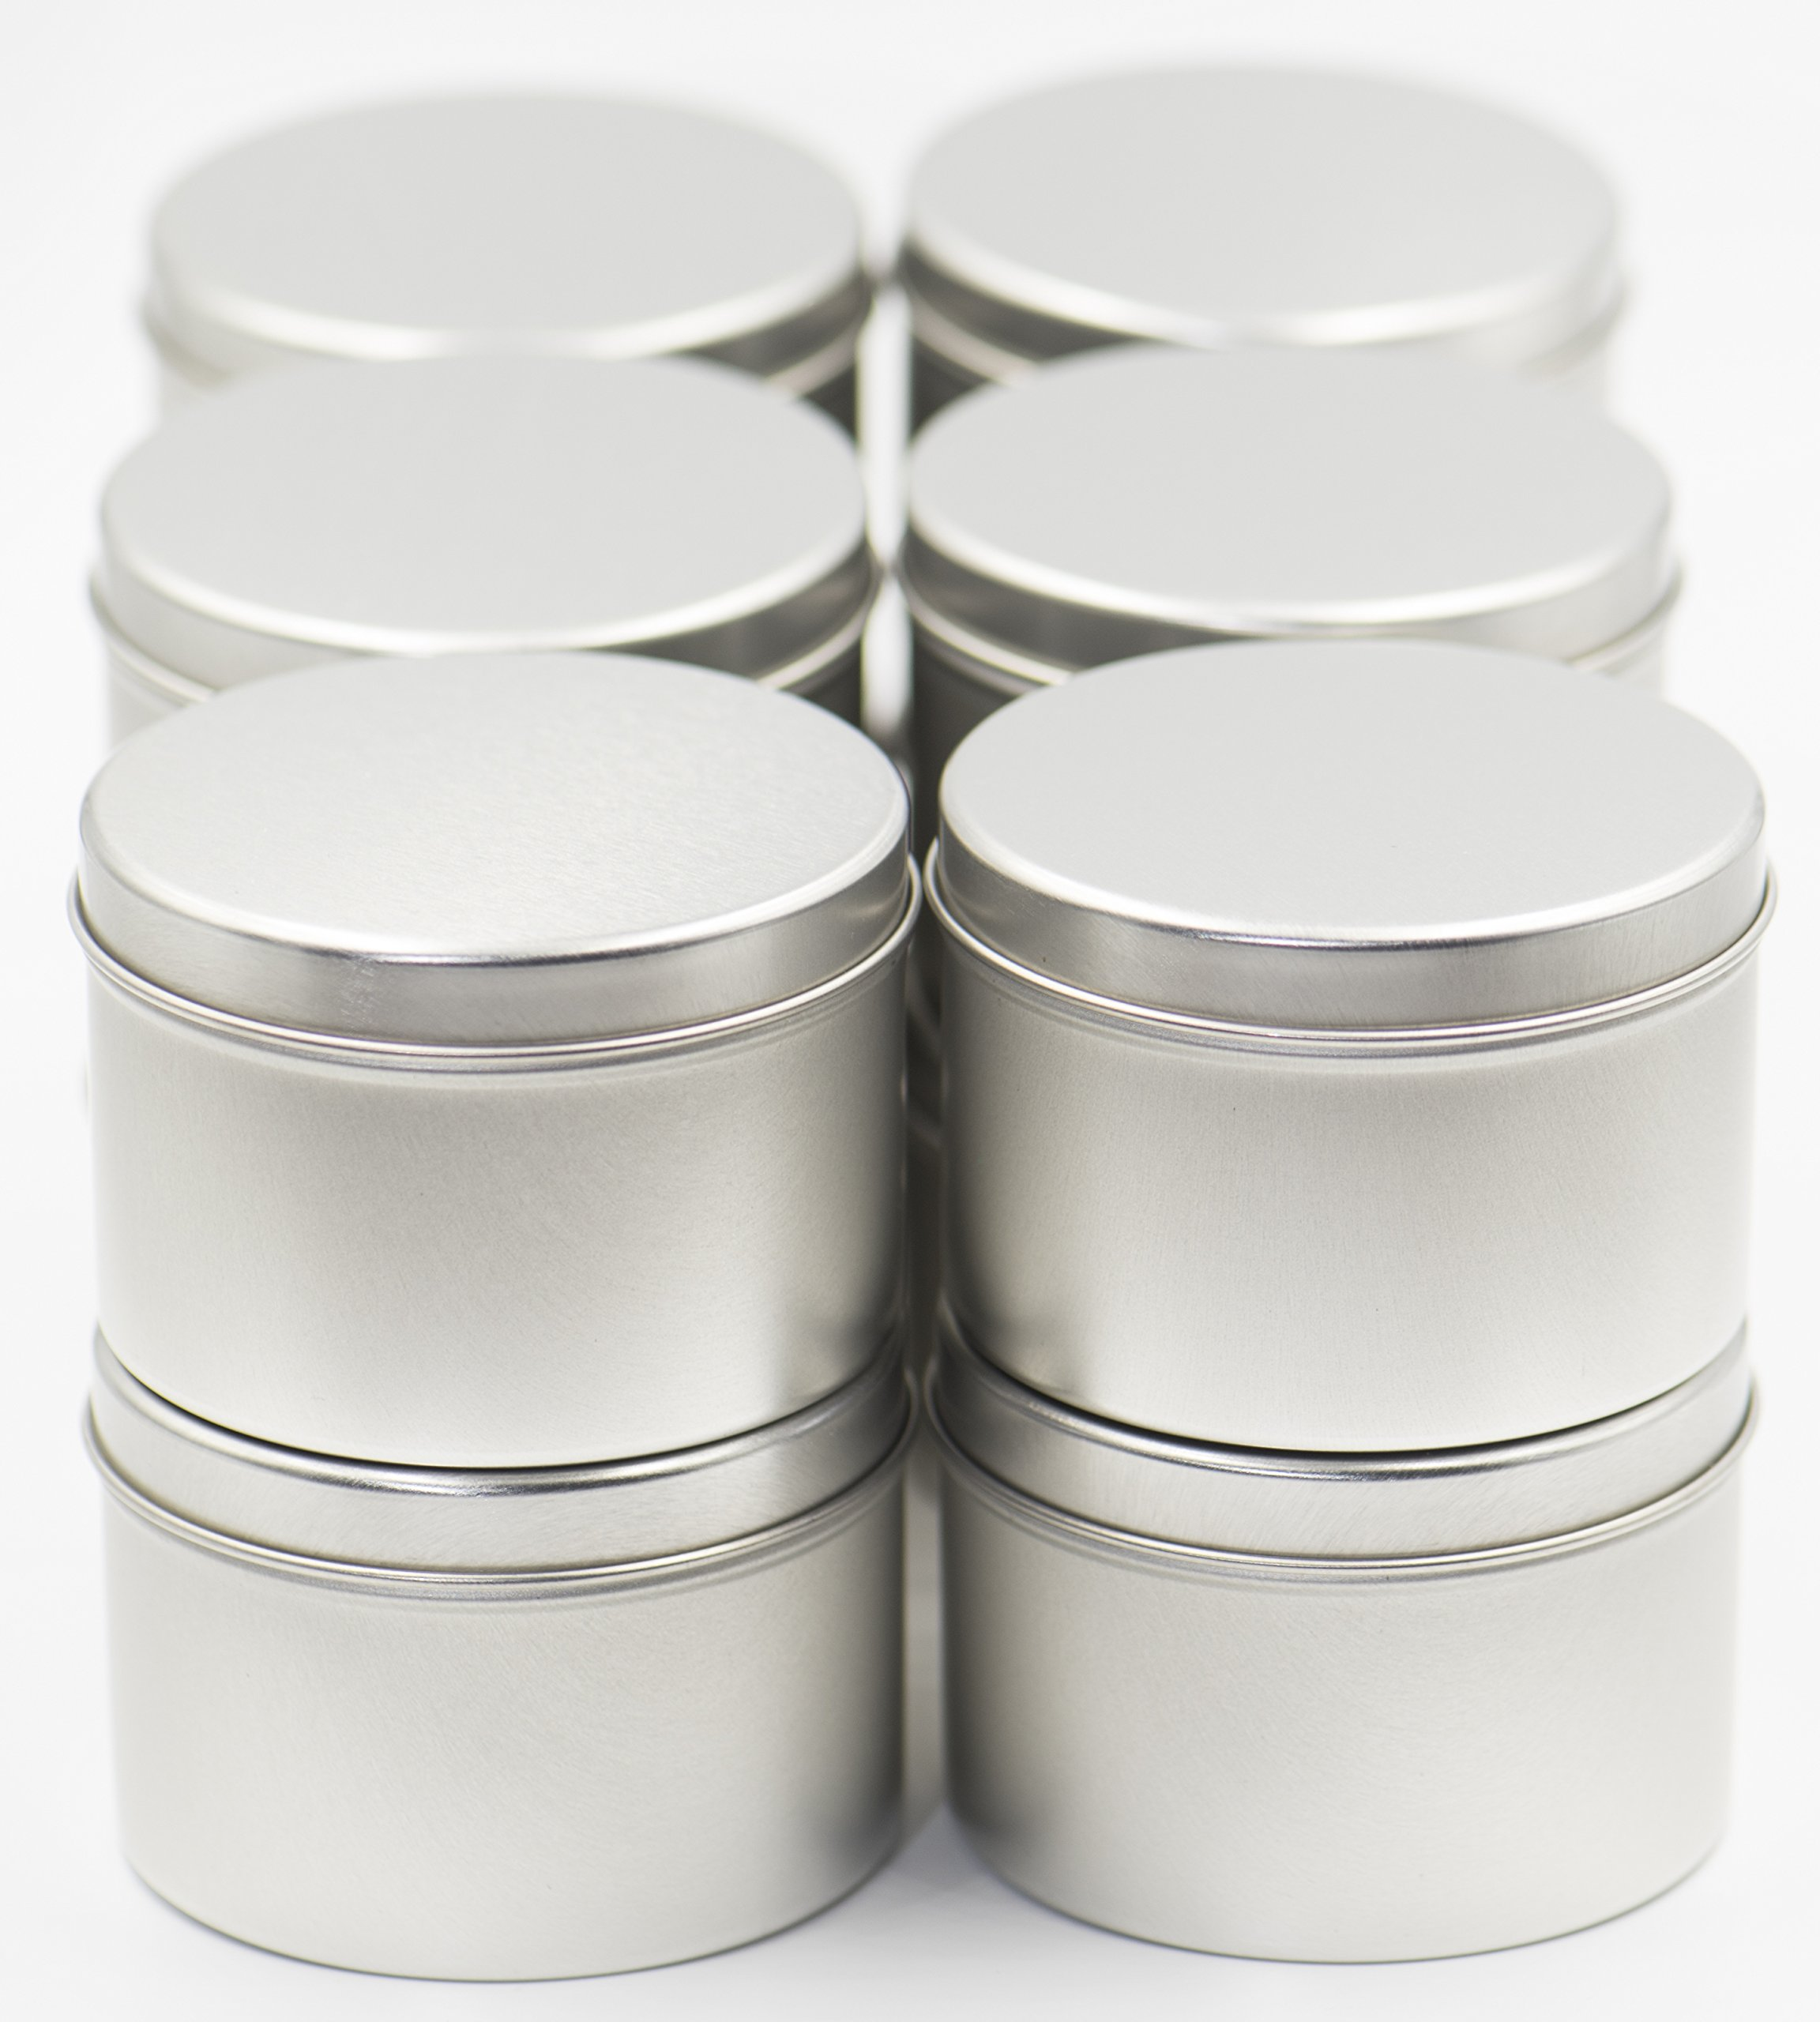 8 oz 12 Pack Tin Cans with Lids for Candle Making from Omnya, Made with Steel, Round Container Tins for Candles, Spices, & DIY Projects, 8oz Can with Secure Pop-on Lid by Omnya